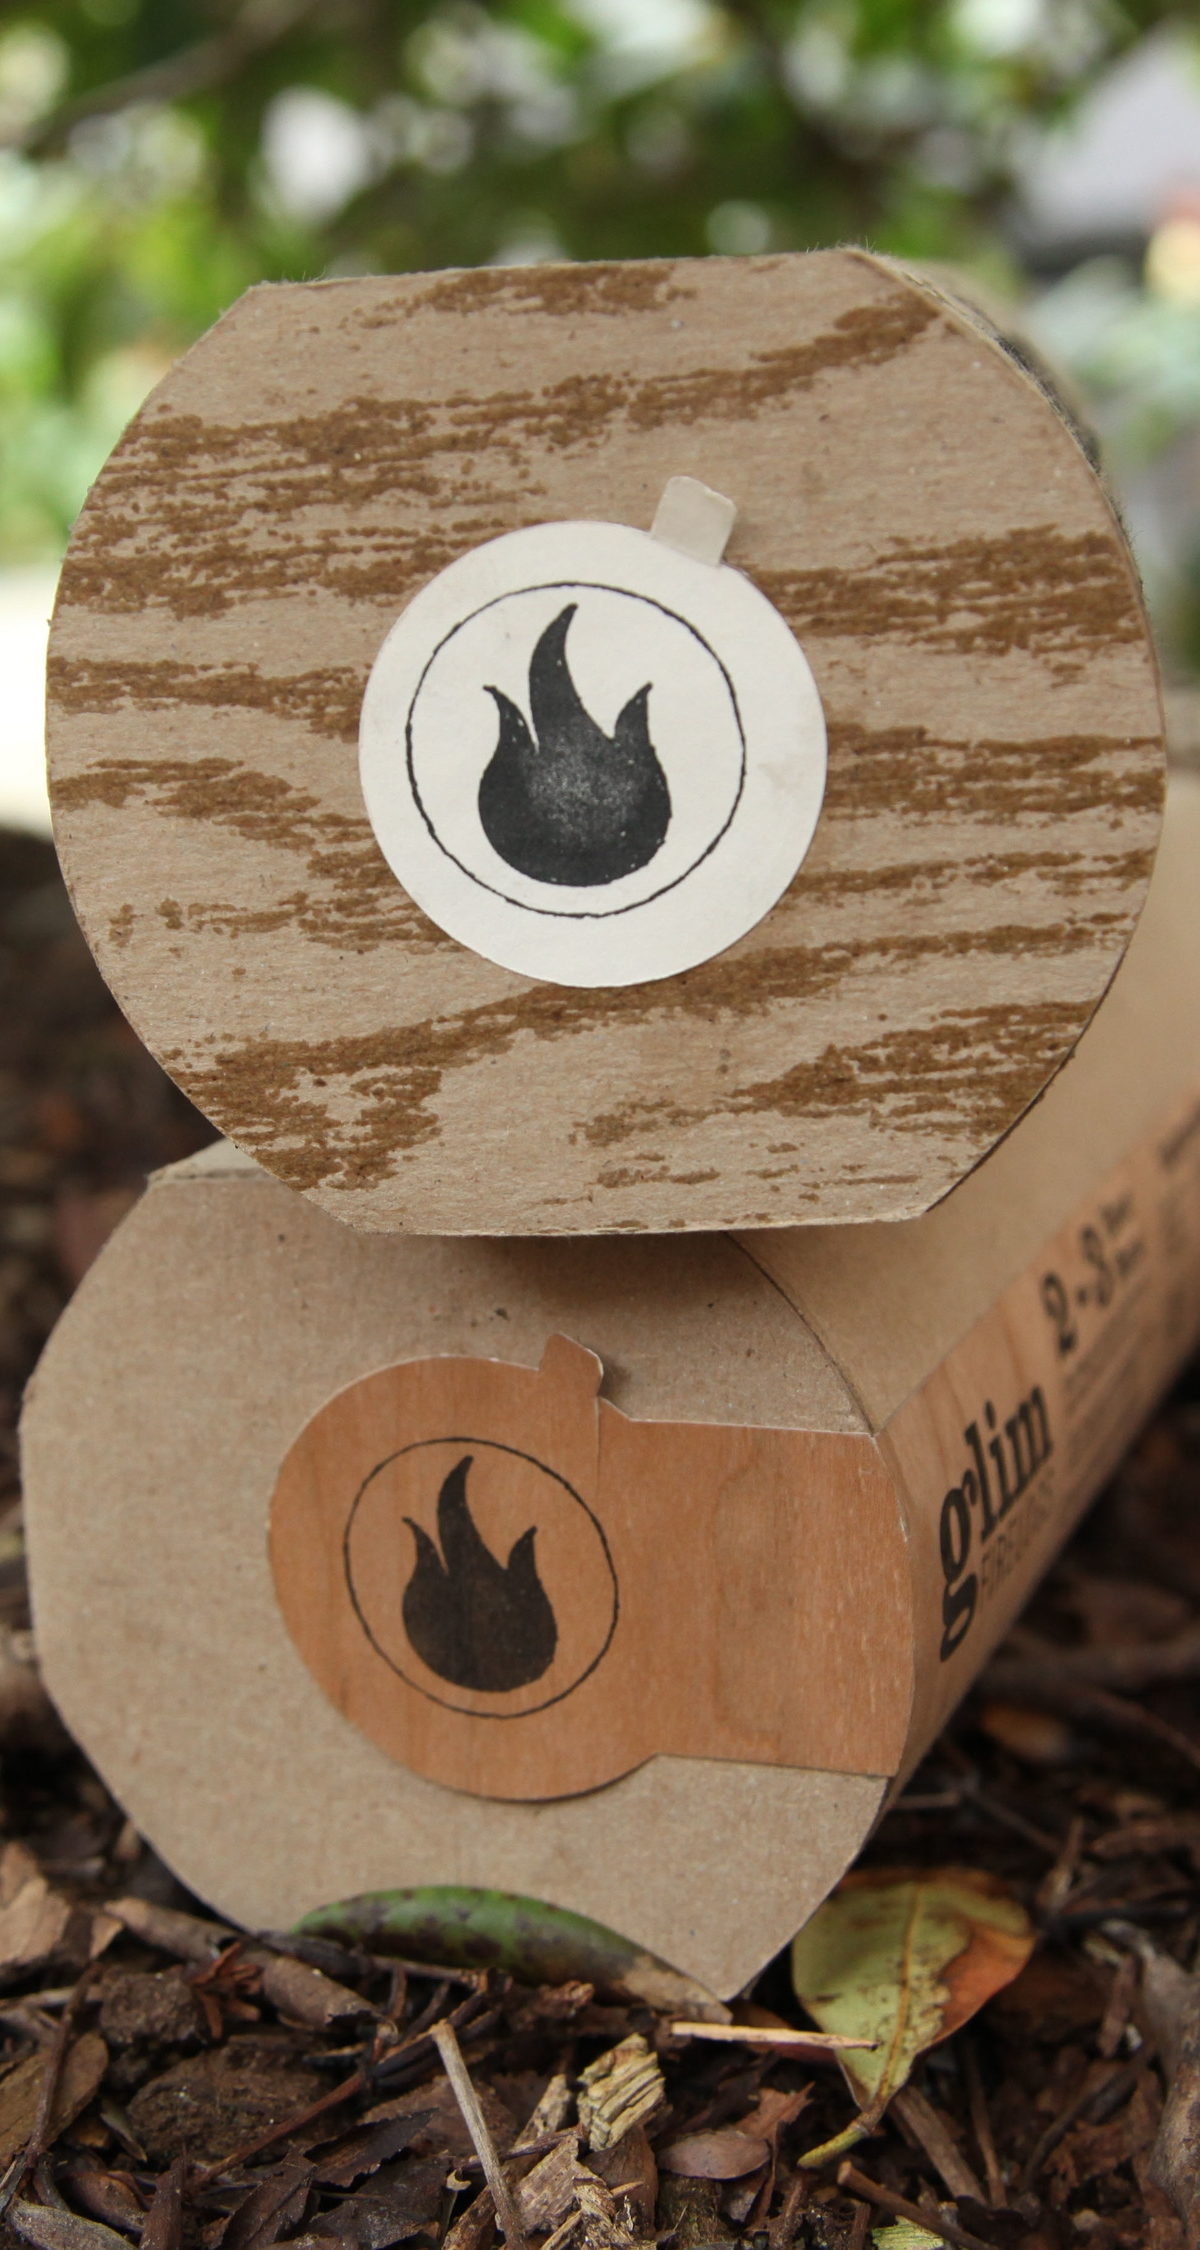 Glim fire logs branding and packaging